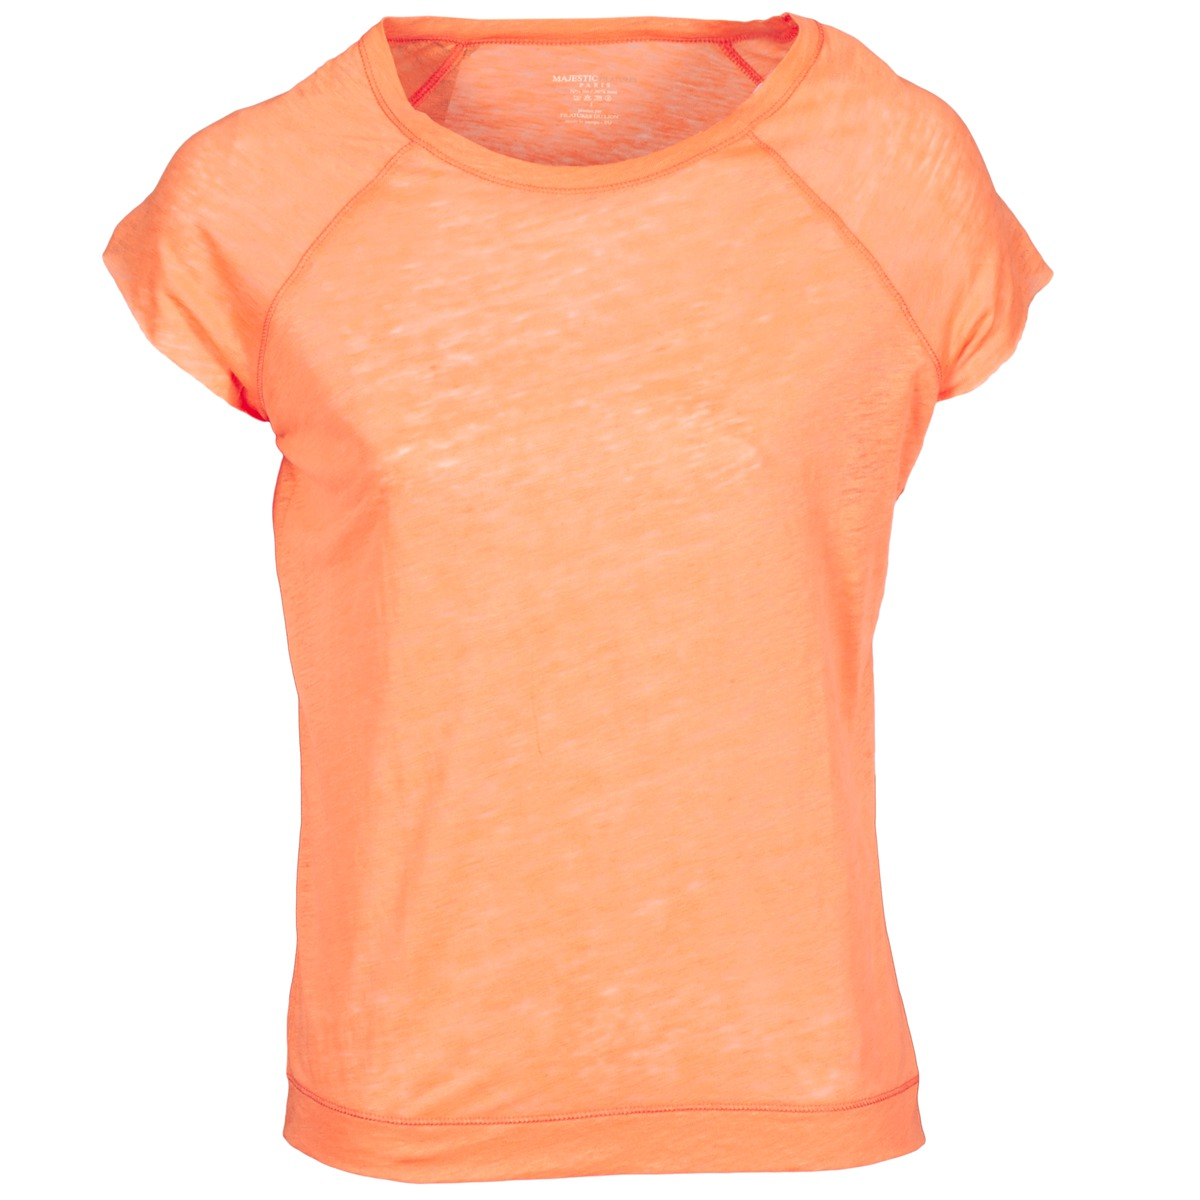 Majestic 2105 Orange Fluo